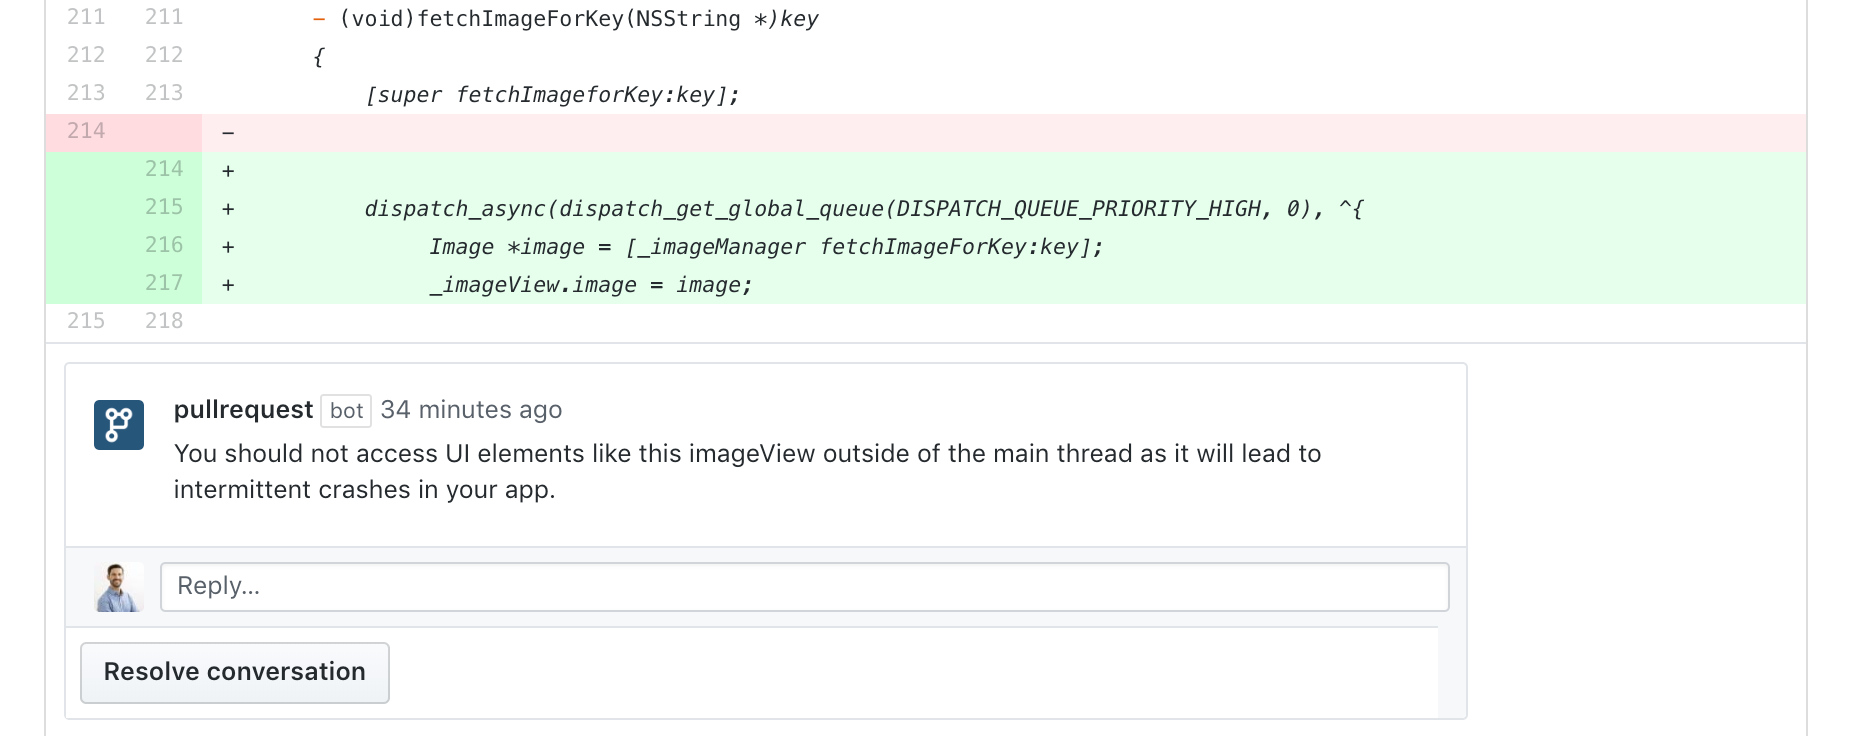 An inline code review comment on a GitHub pull request